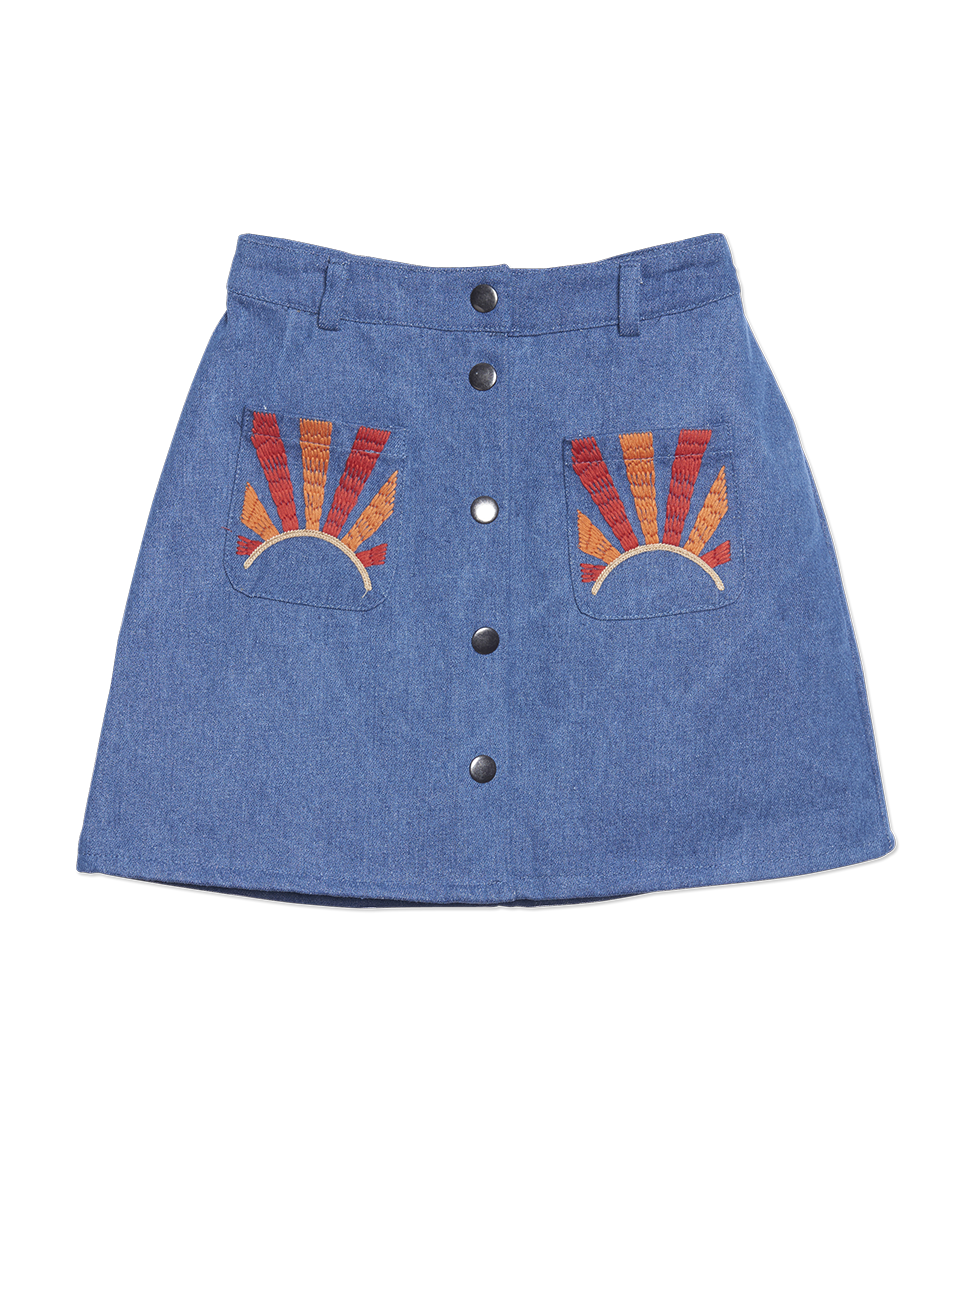 Siaomimi Sunbeam Skirt